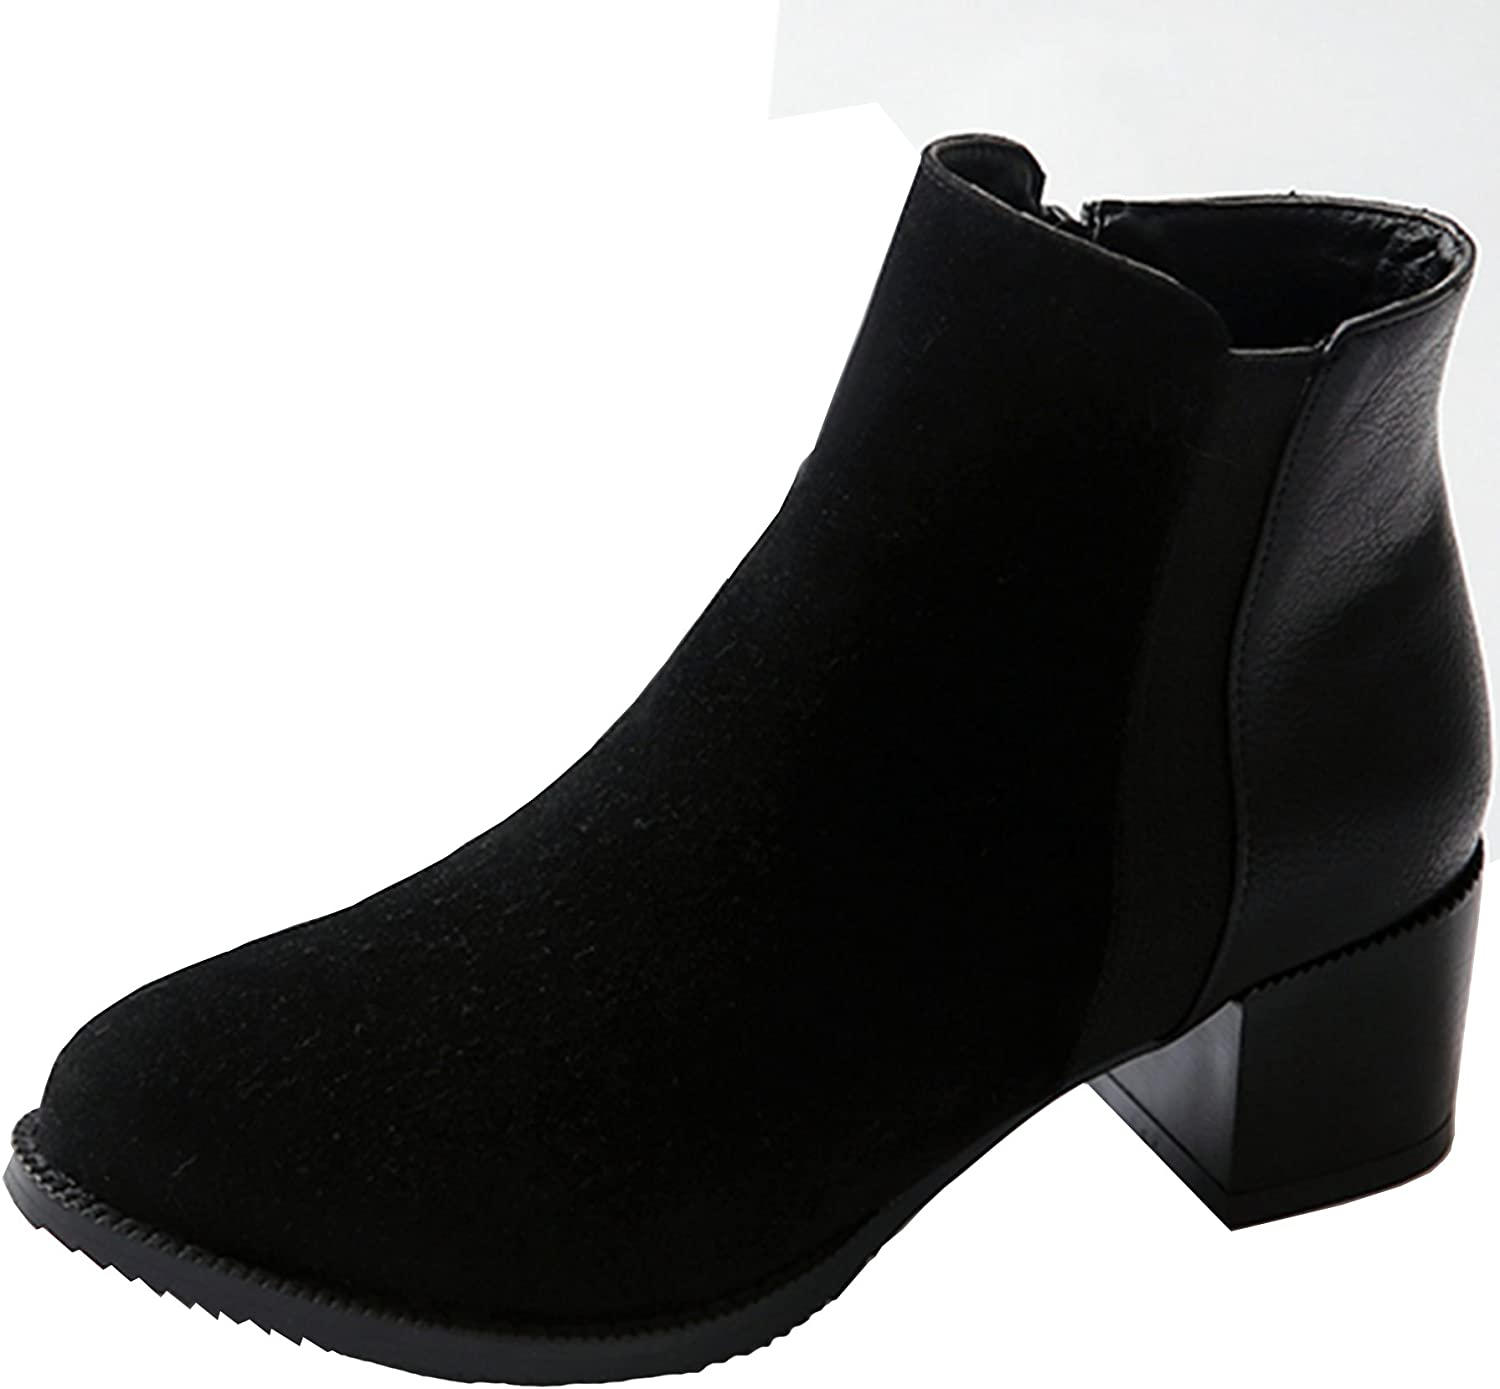 KingRover Women's Mid Heel Closed Toe Casual Ankle Bootie